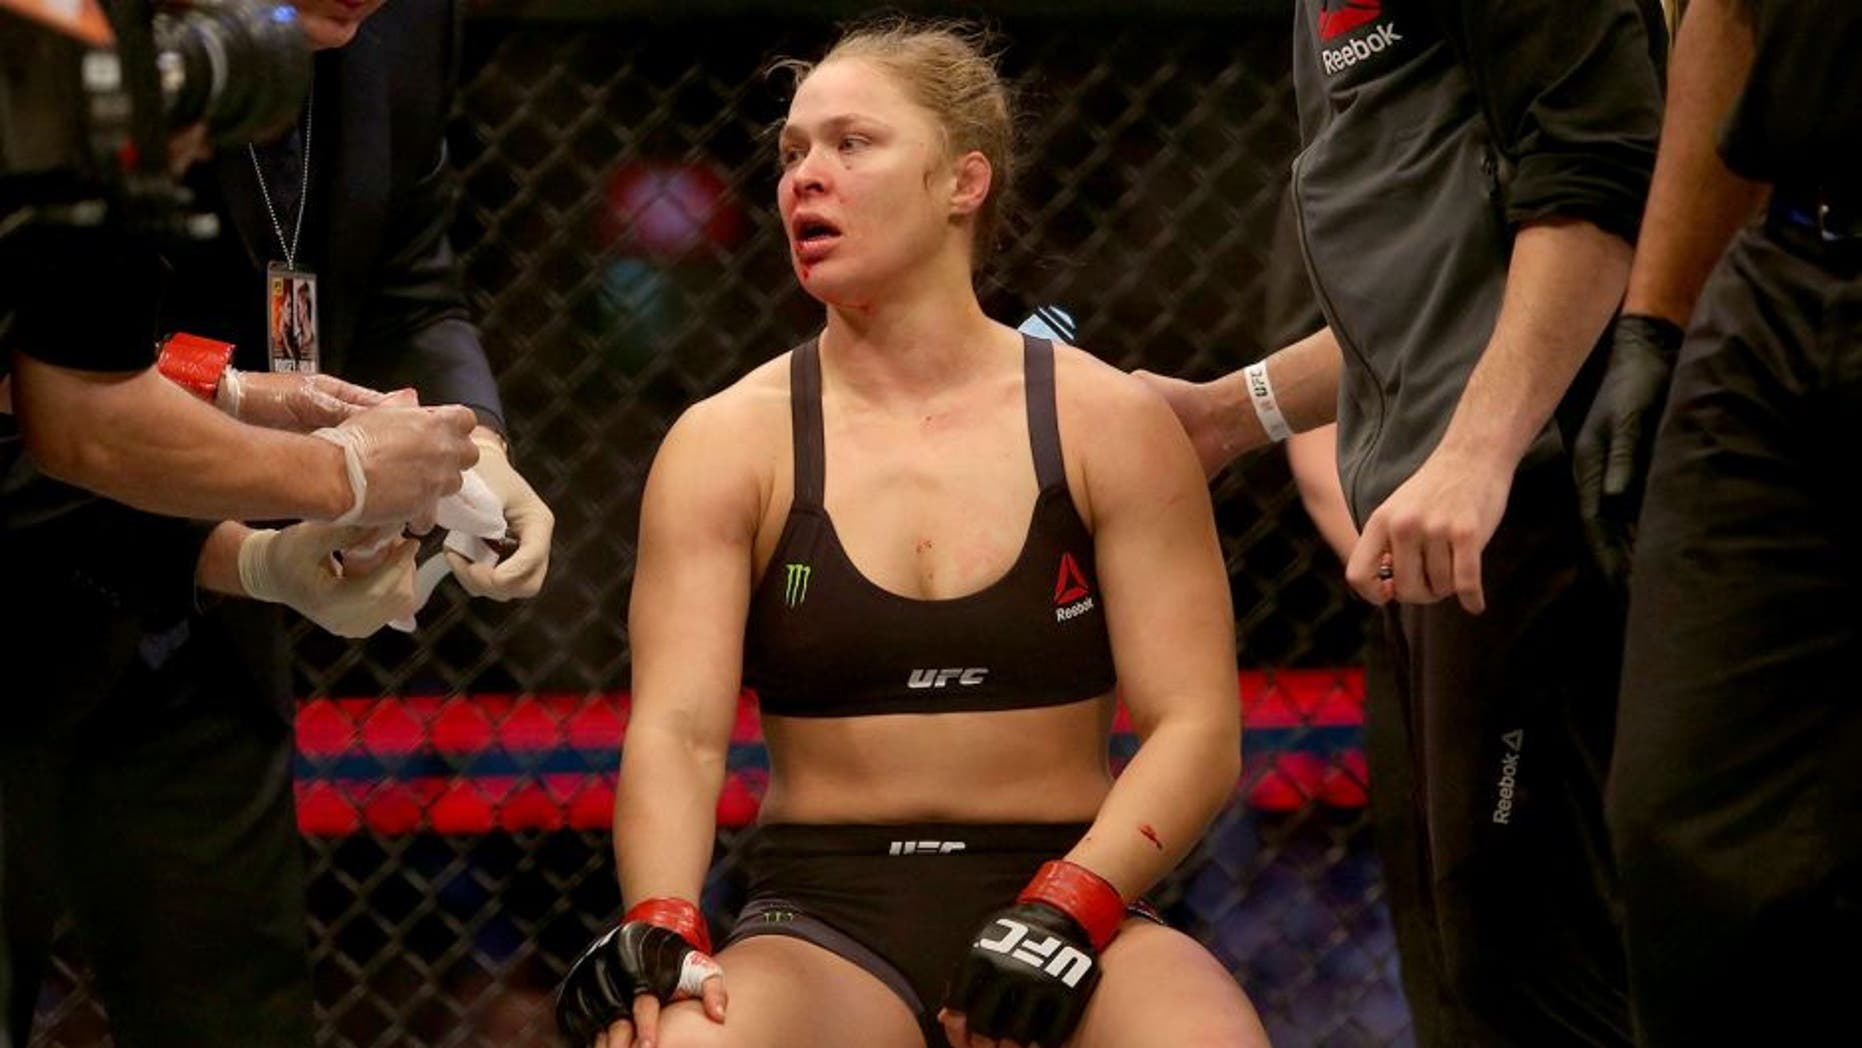 MELBOURNE, AUSTRALIA - NOVEMBER 15: Ronda Rousey of the United States receives medical treatment after being defeated by Holly Holm of the United States in their UFC women's bantamweight championship bout during the UFC 193 event at Etihad Stadium on November 15, 2015 in Melbourne, Australia. (Photo by Pat Scala /Zuffa LLC/Zuffa LLC via Getty Images)